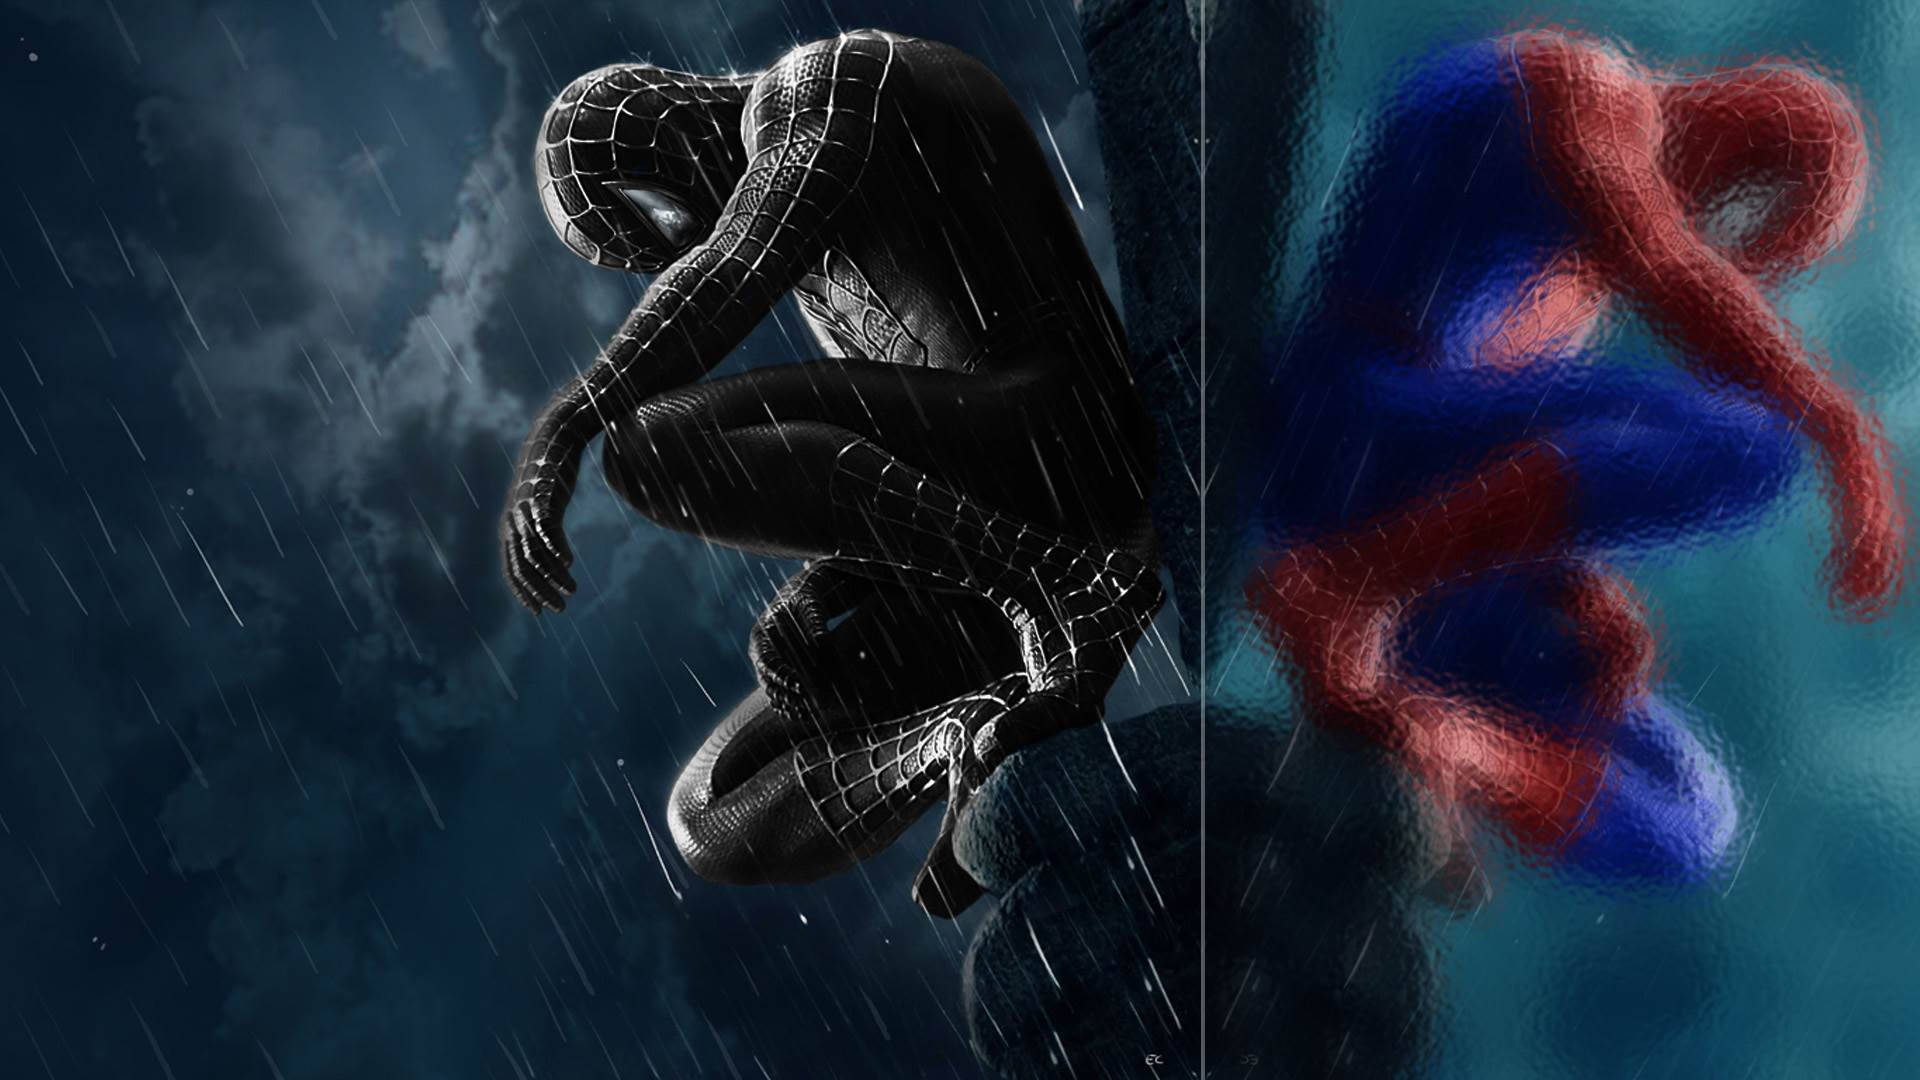 Tobey Maguire In Spider Man Hd Wallpapers 1920x1080